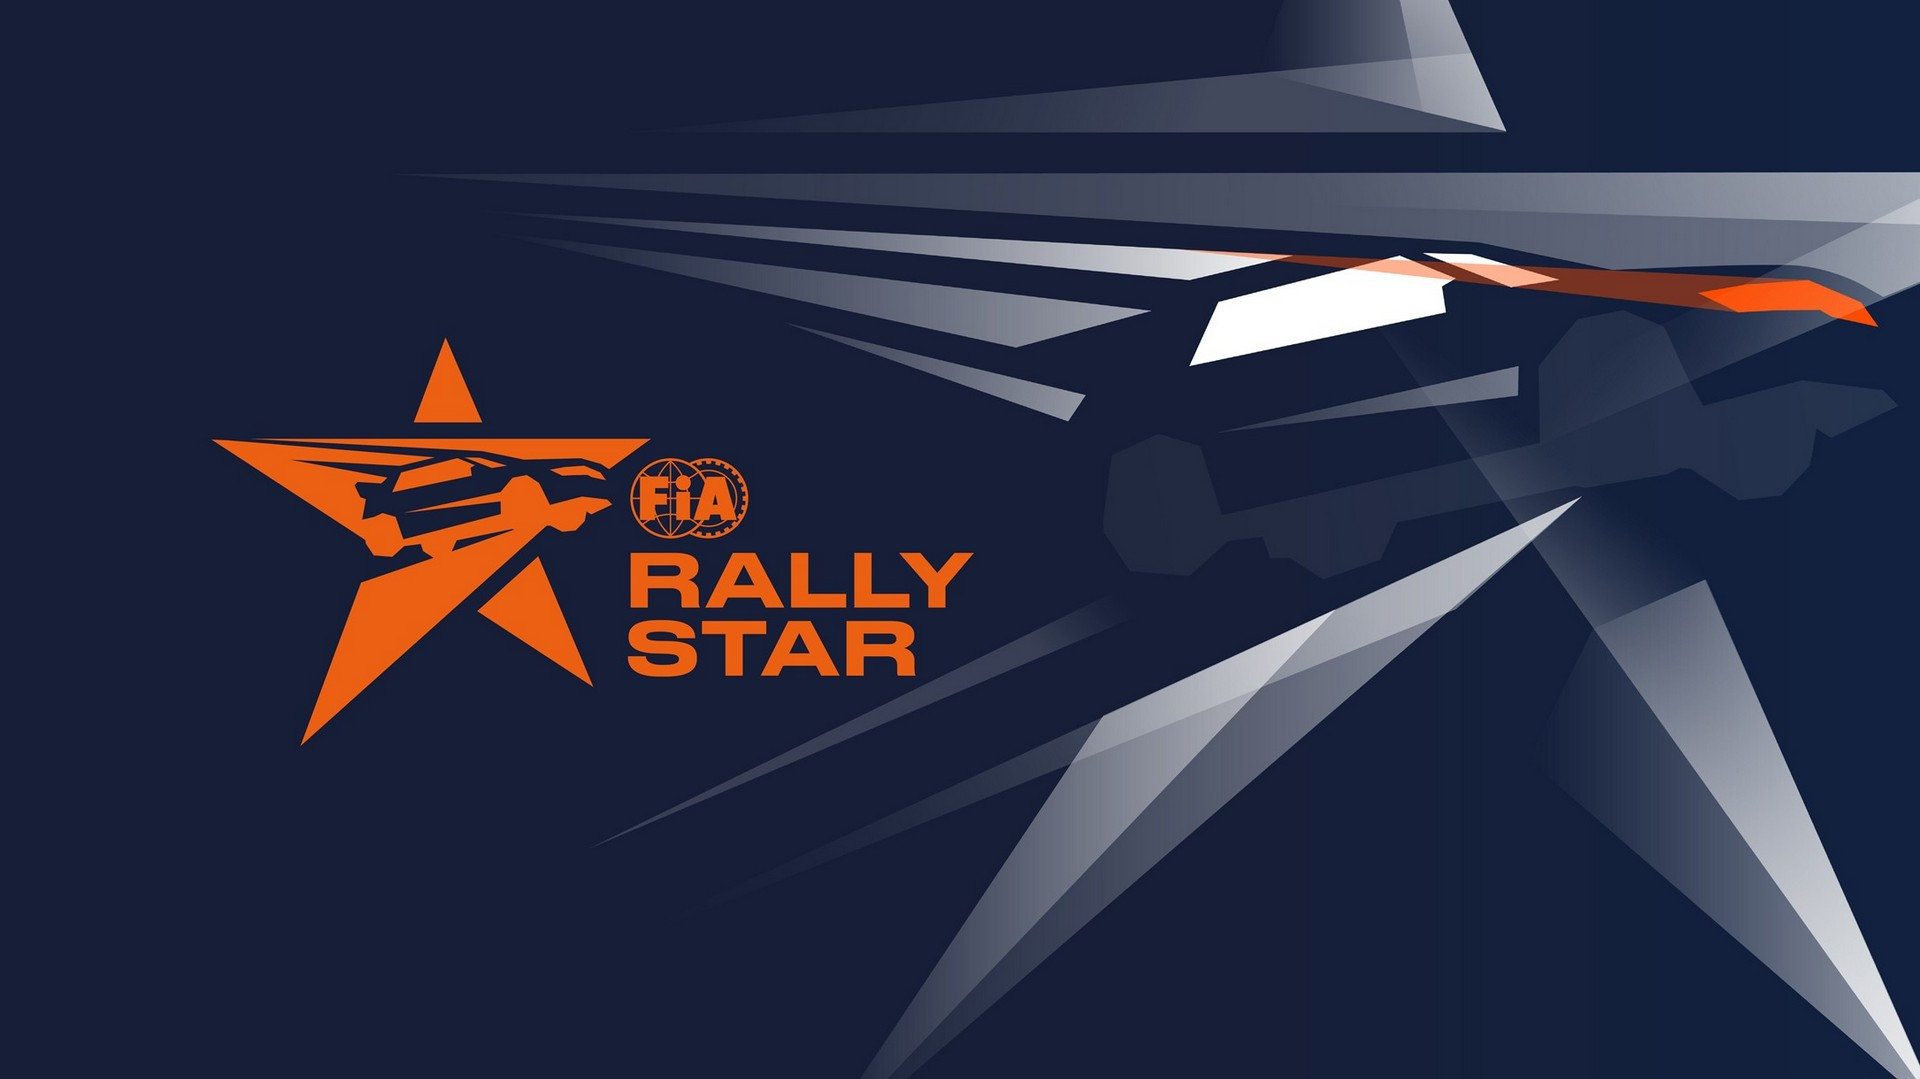 FIA Rally Star